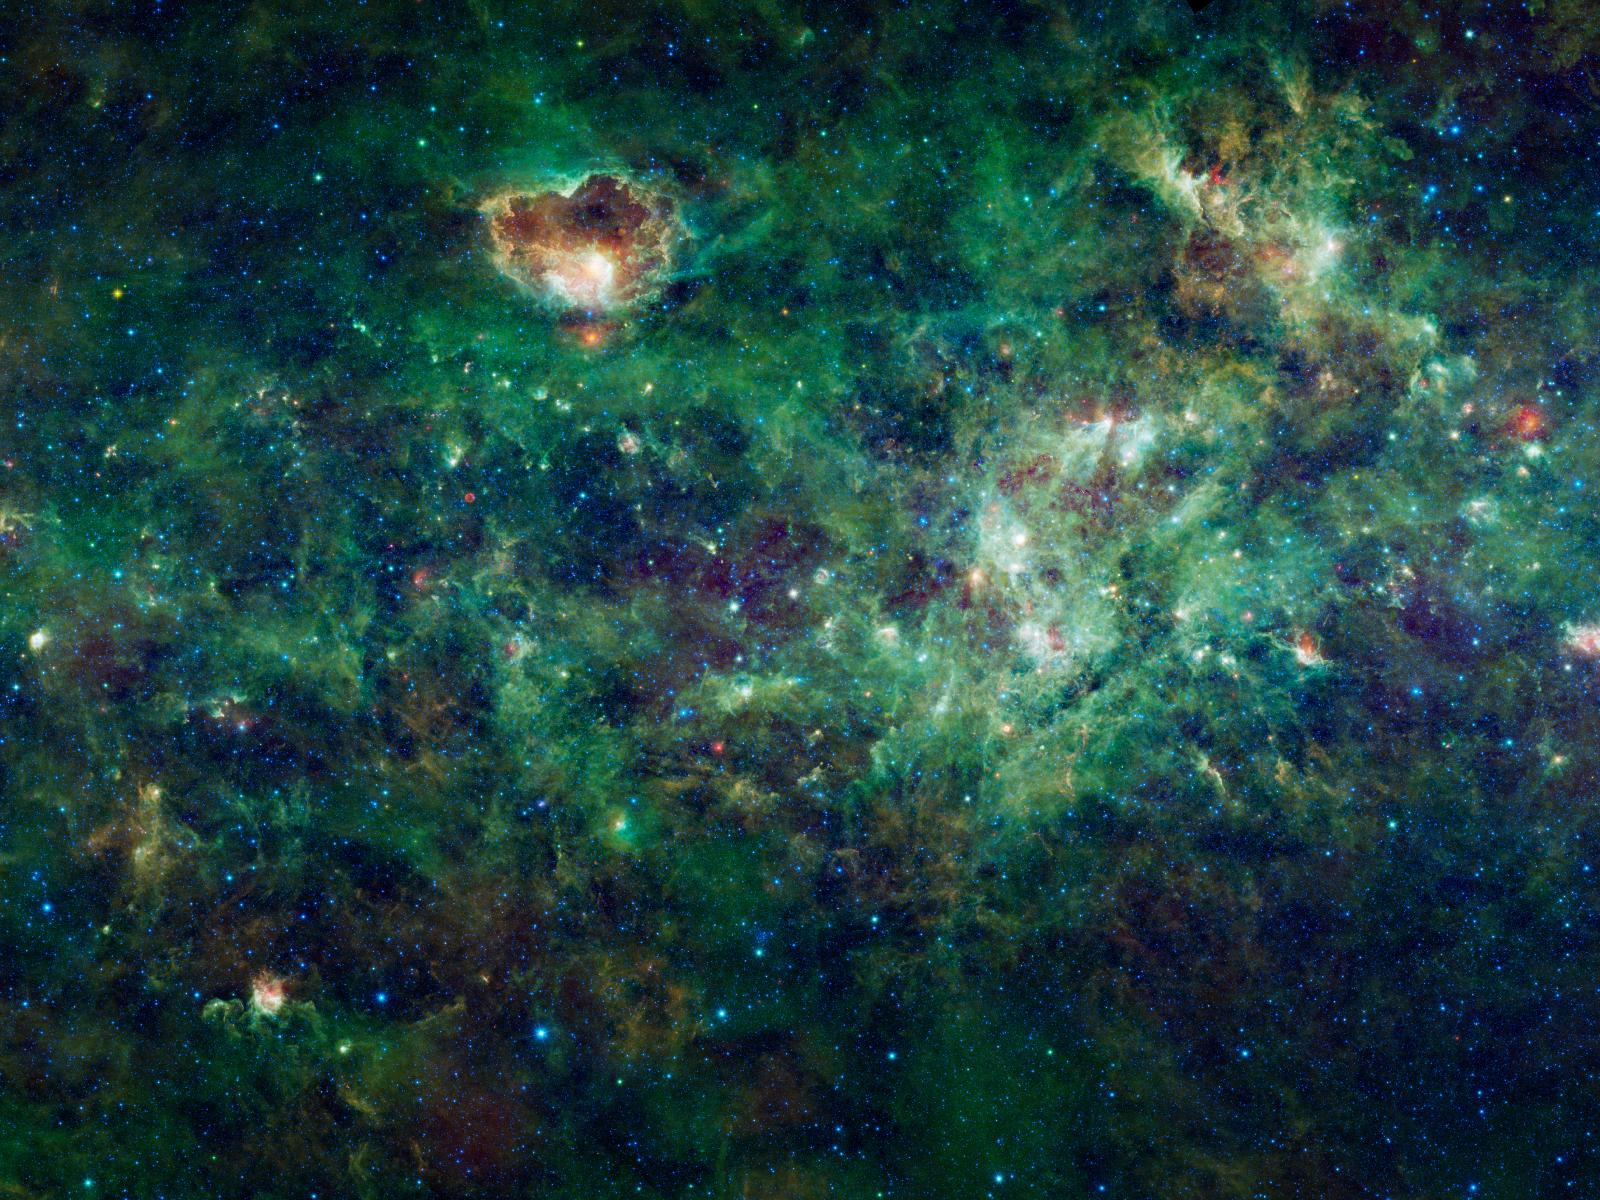 NASA Reveals Mysteries of 'Interstellar' Space